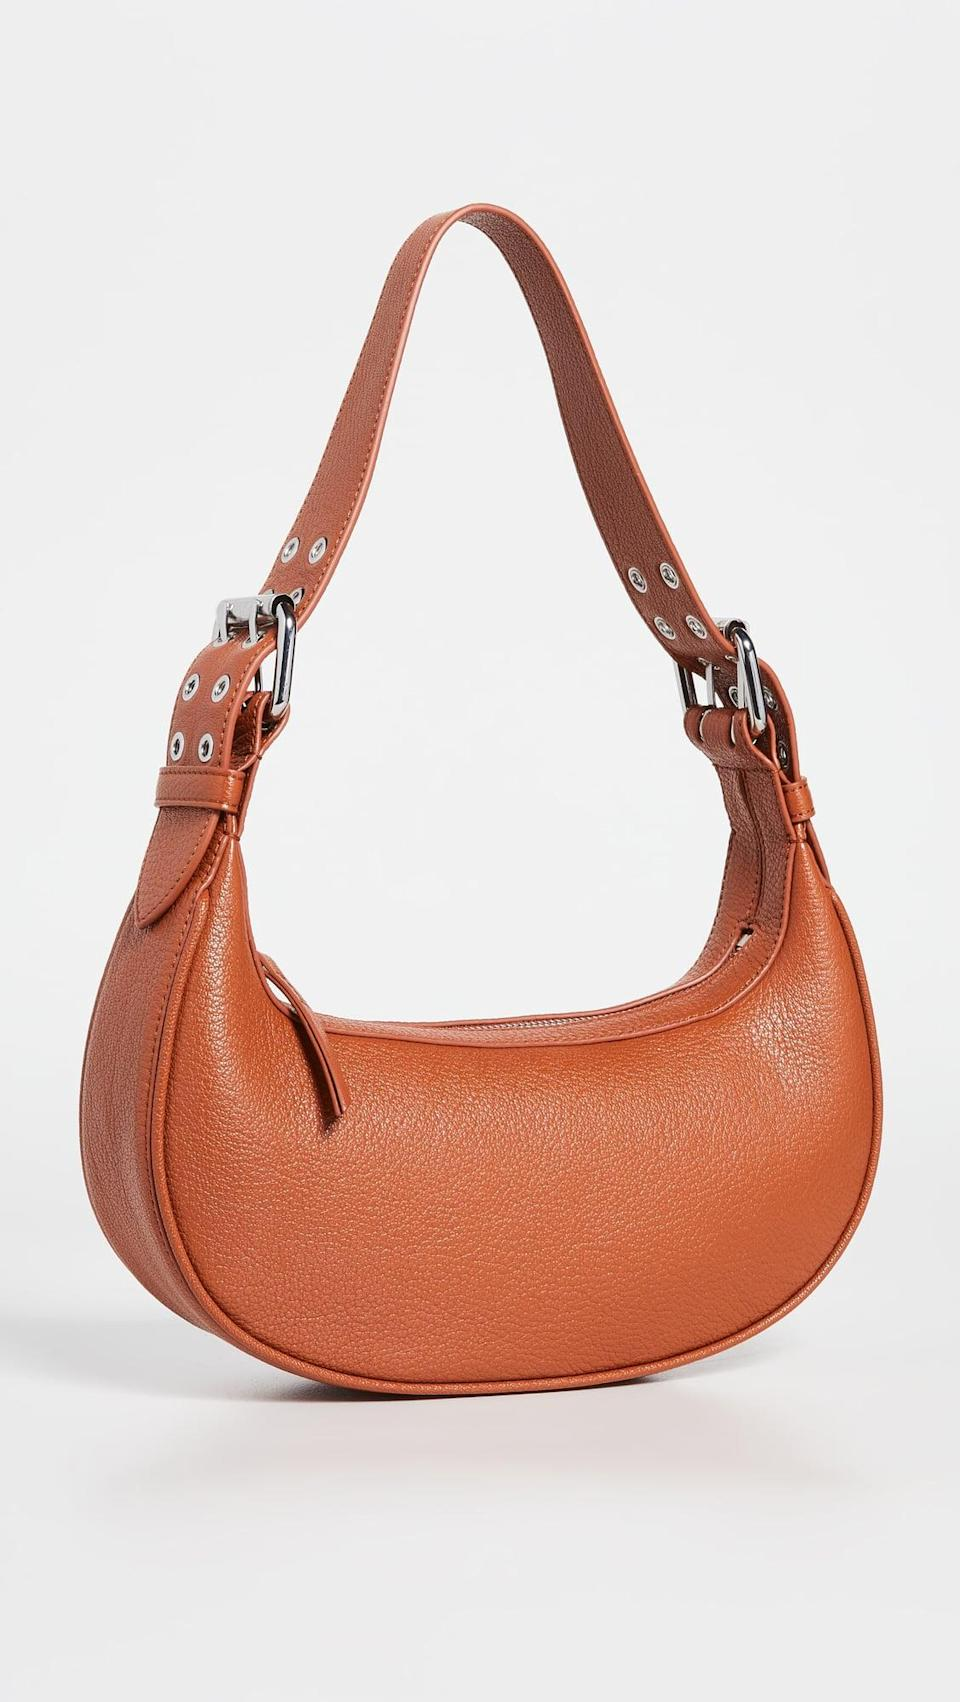 <p>This <span>By Far Soho Cognac Grained Leather</span> ($684) is one you're going to want to wear all the time. The cognac leather is super versatile and goes with everything.</p>